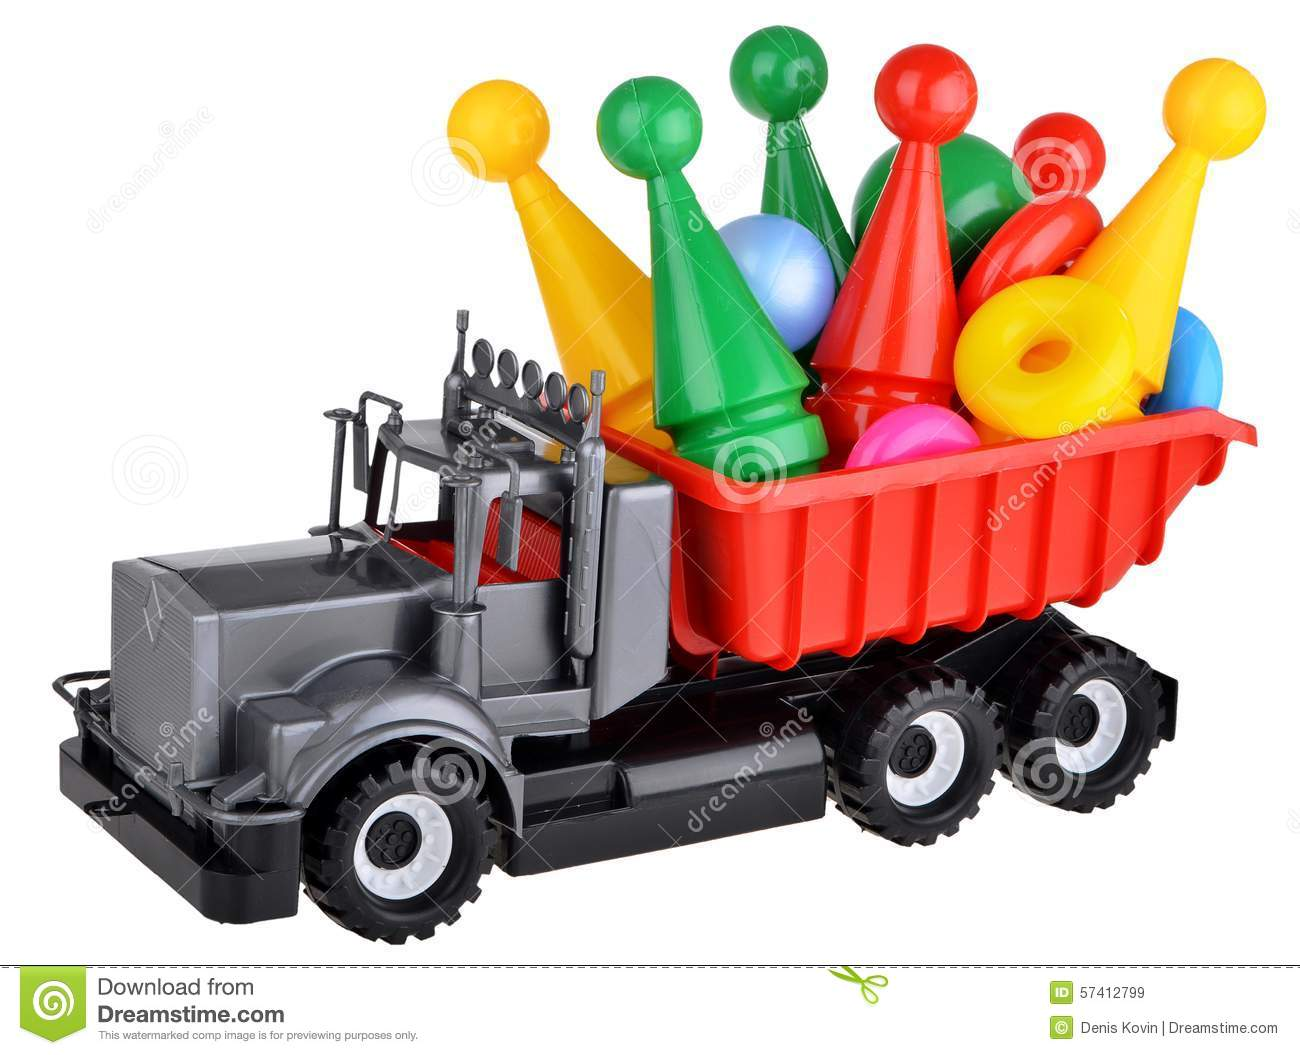 Plastic toy truck with bowling